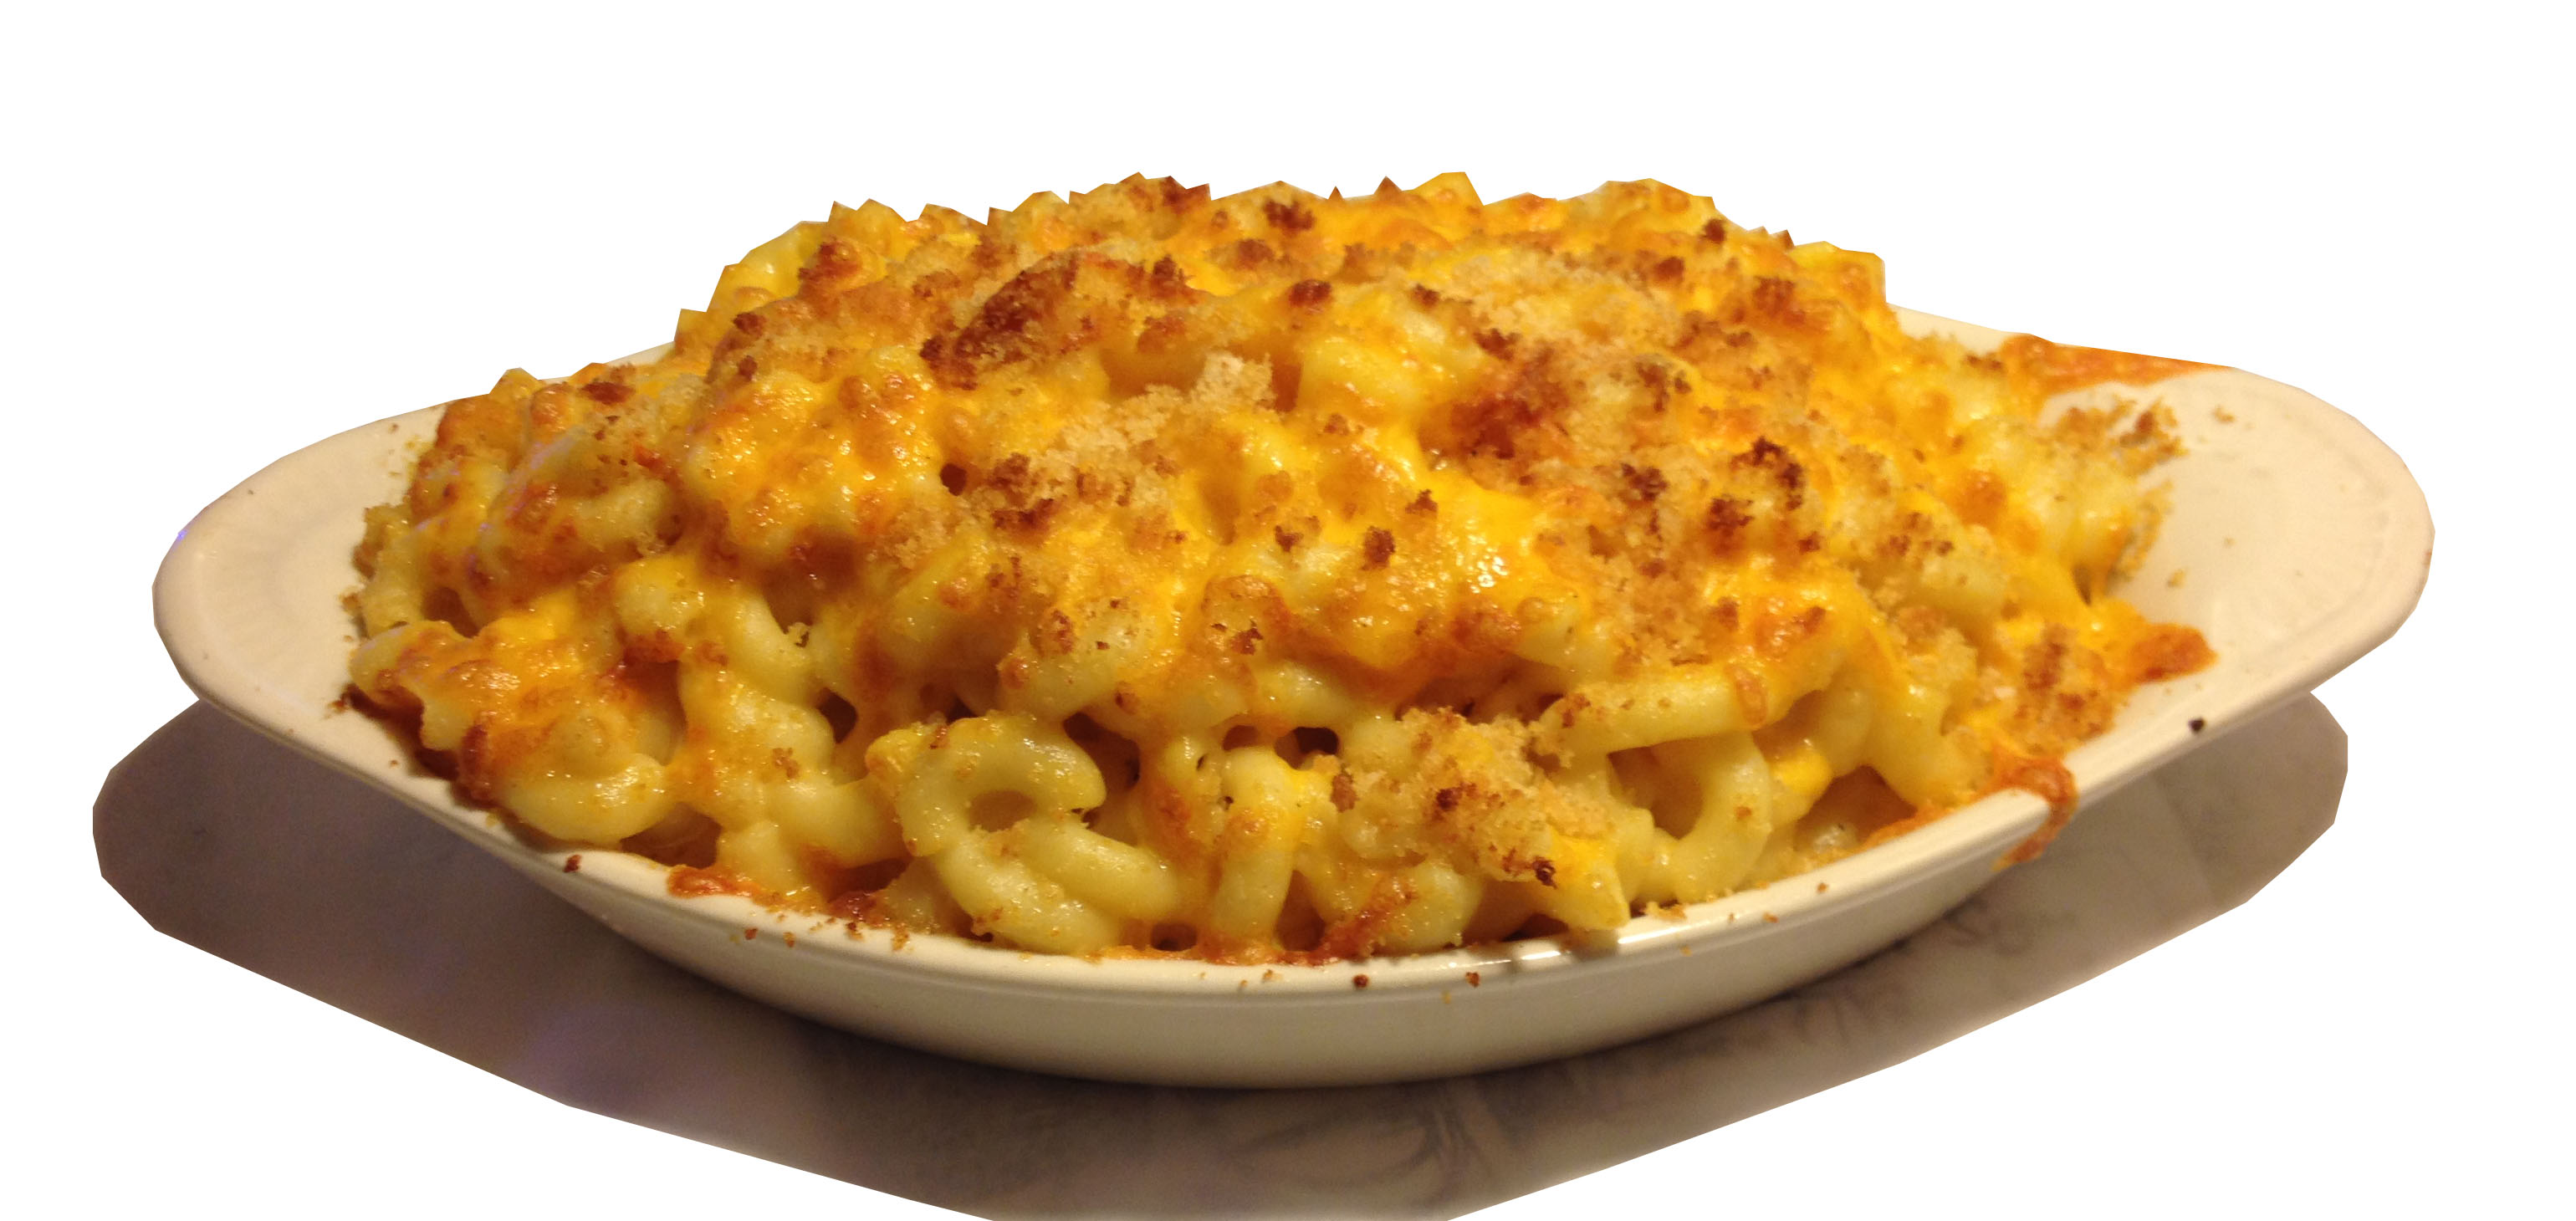 Baked Mac and Cheese Image